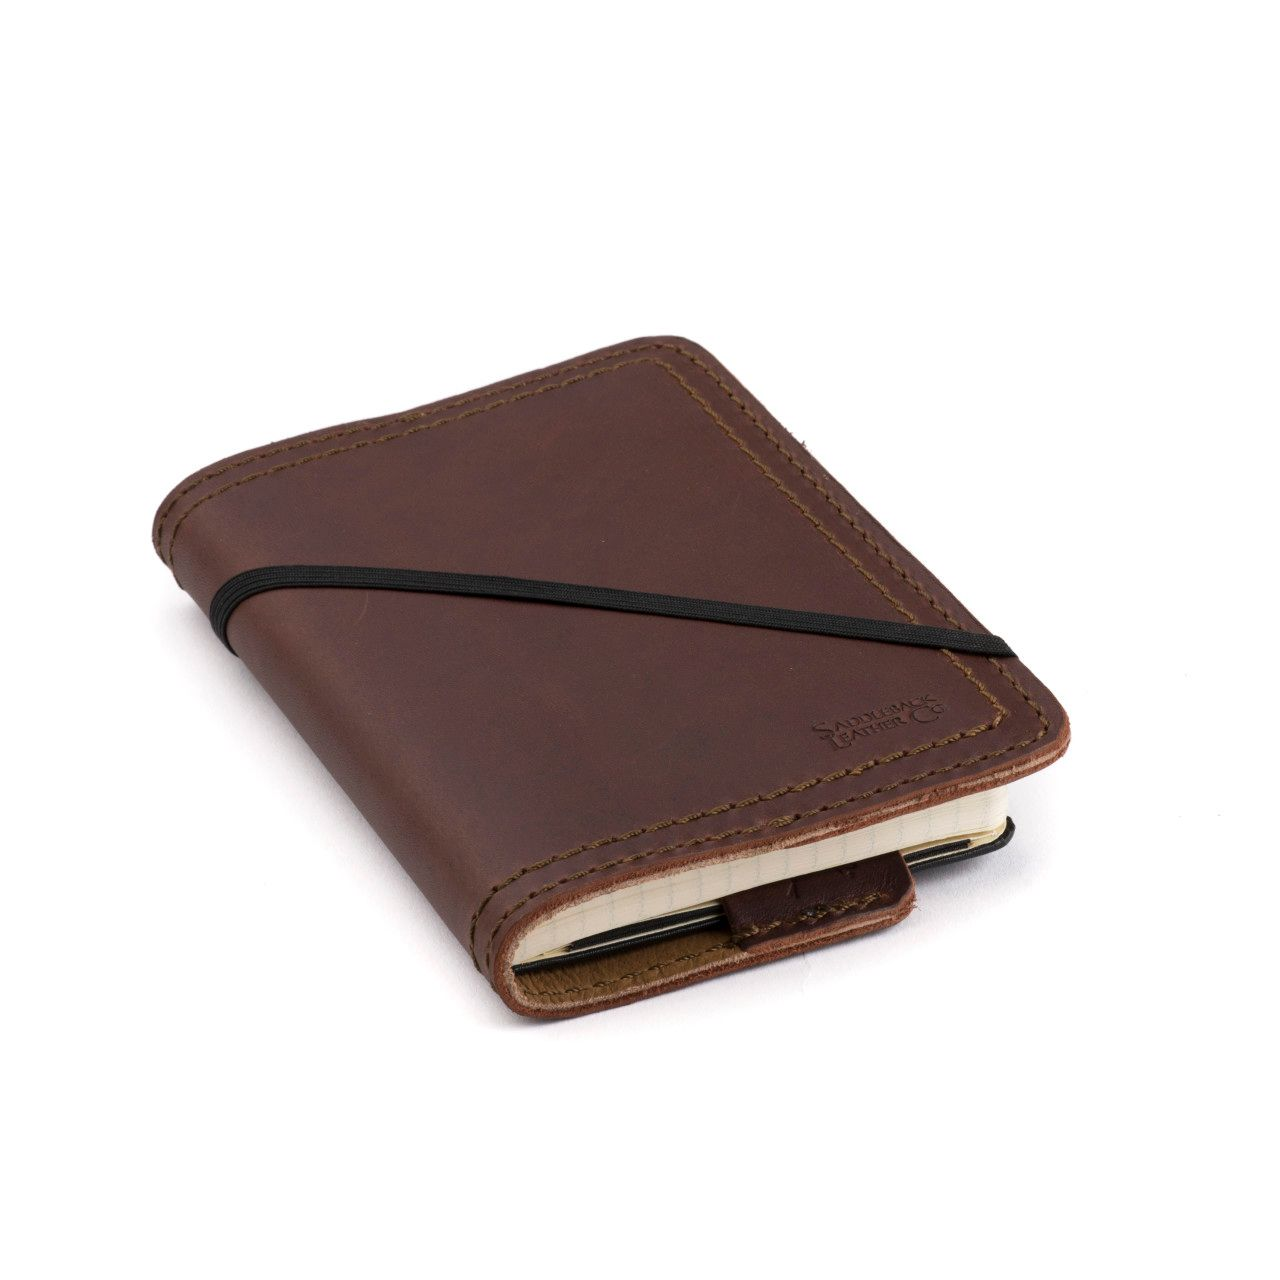 leather notebook cover small in chestnut leather